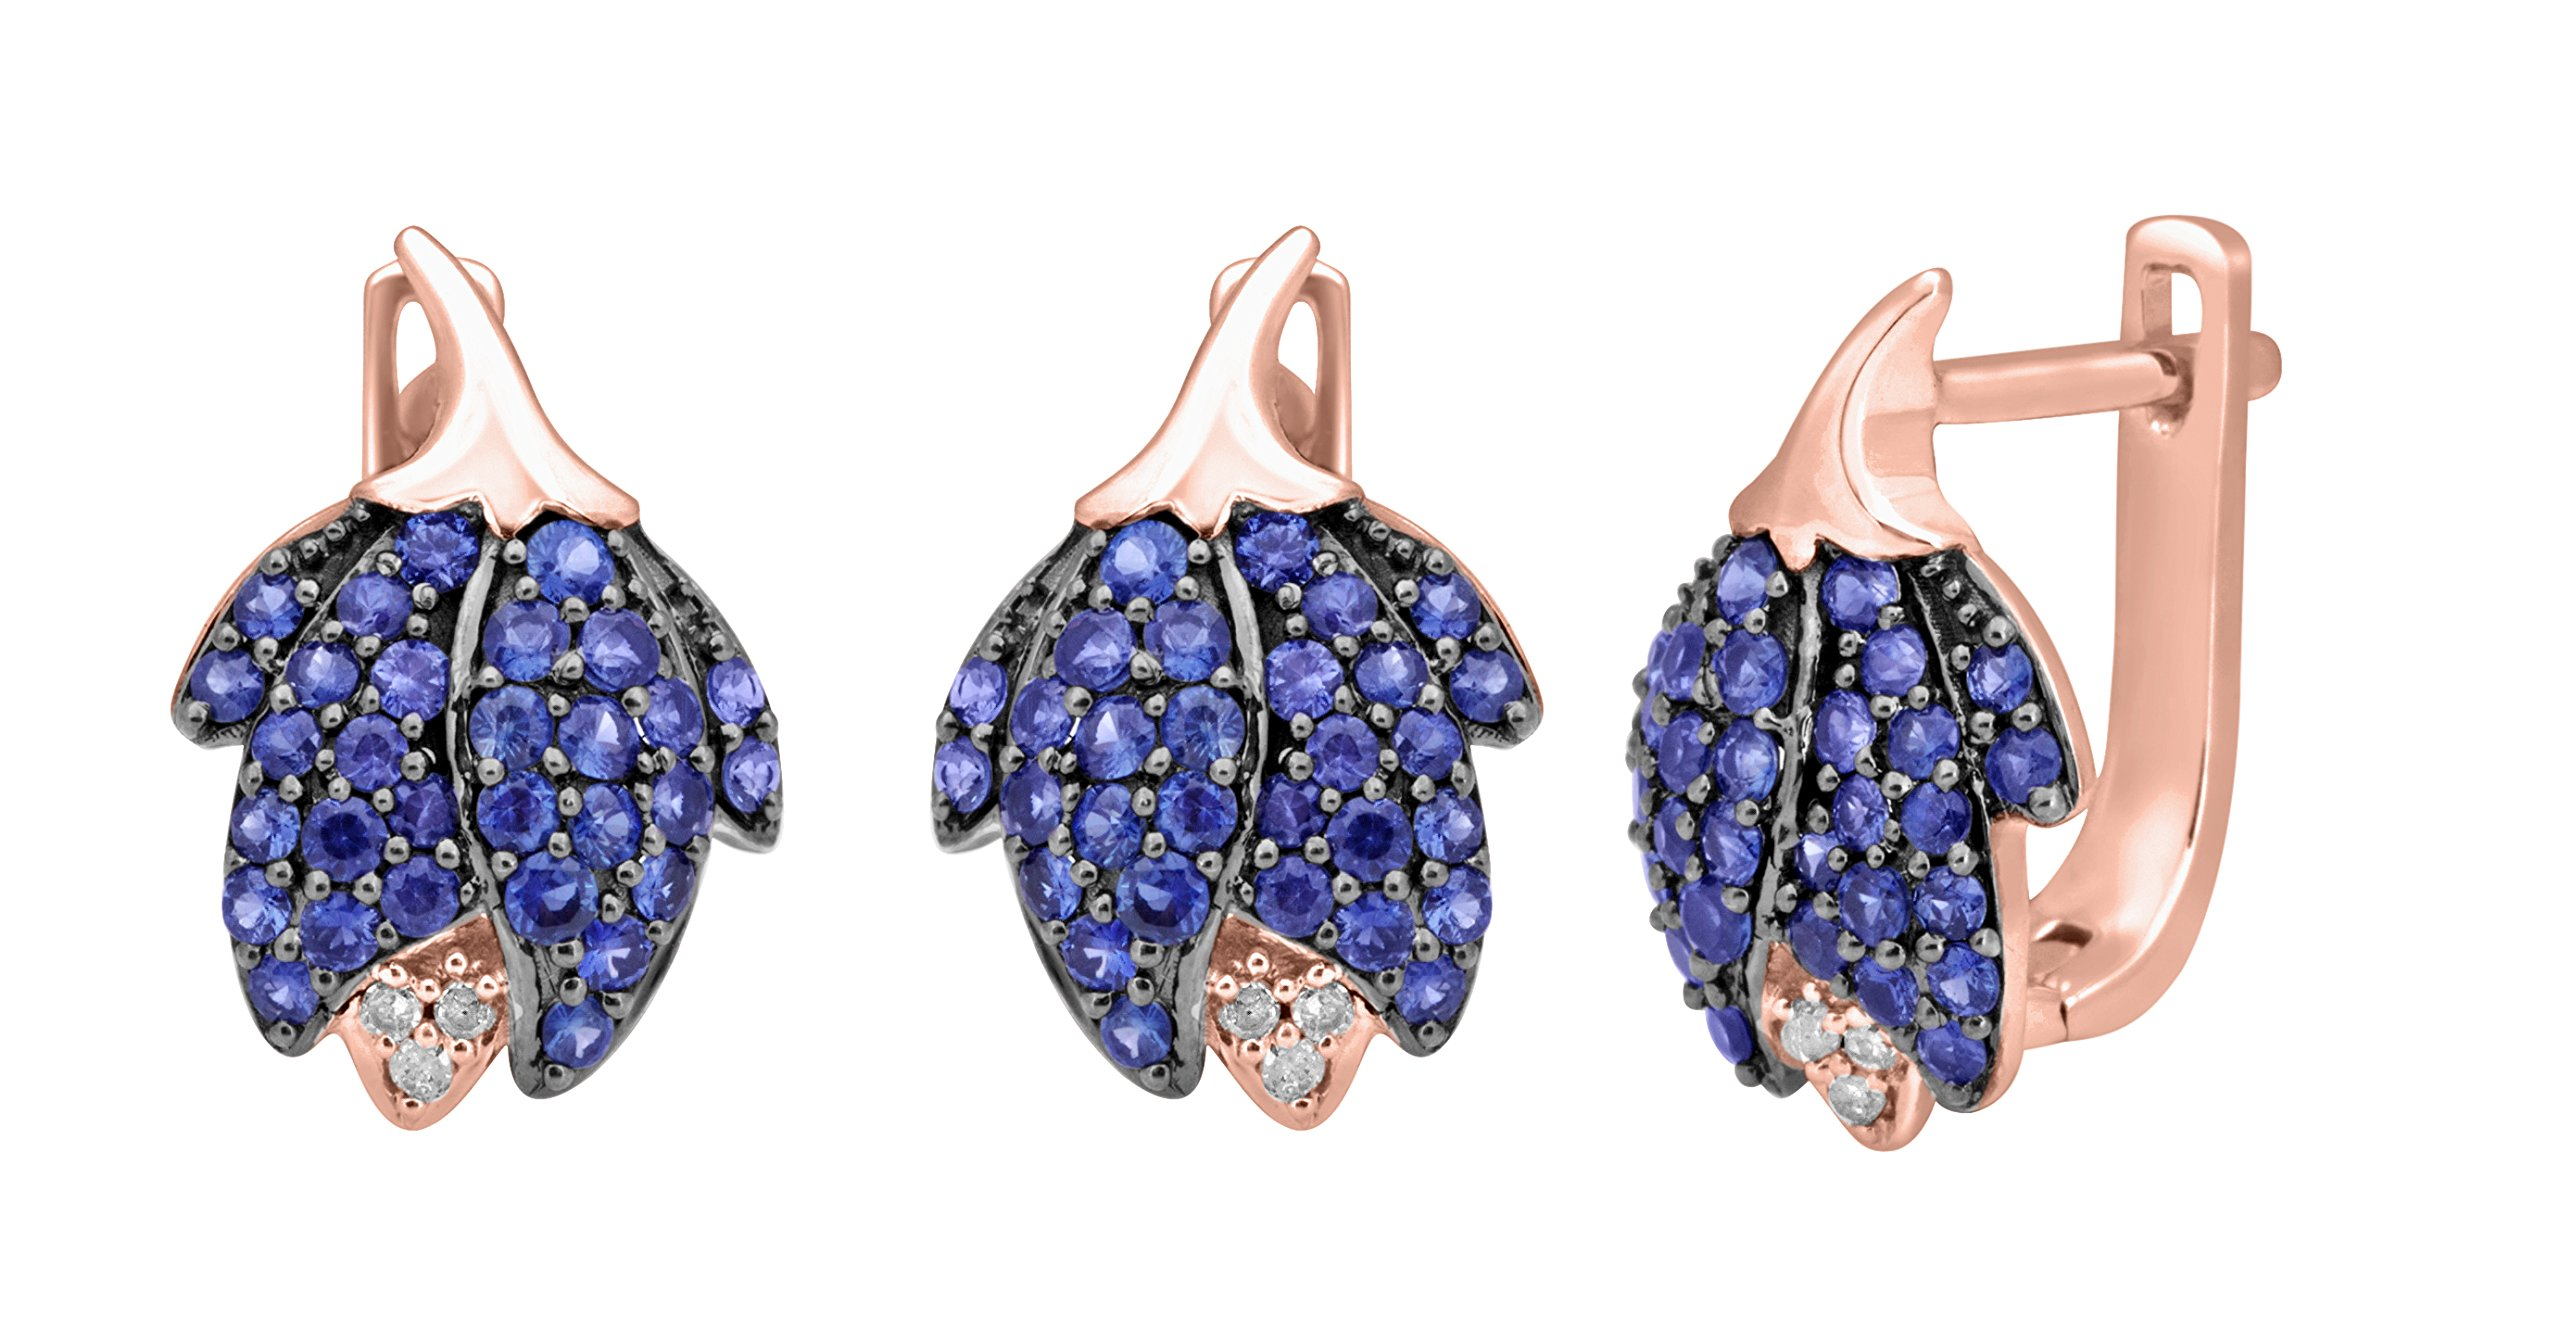 Christmas Gift, Rare, Anniversary Gift, Jewel Ivy 14K Pink Gold Earrings with Sapphire and Diamond (I2-I2-GHI)